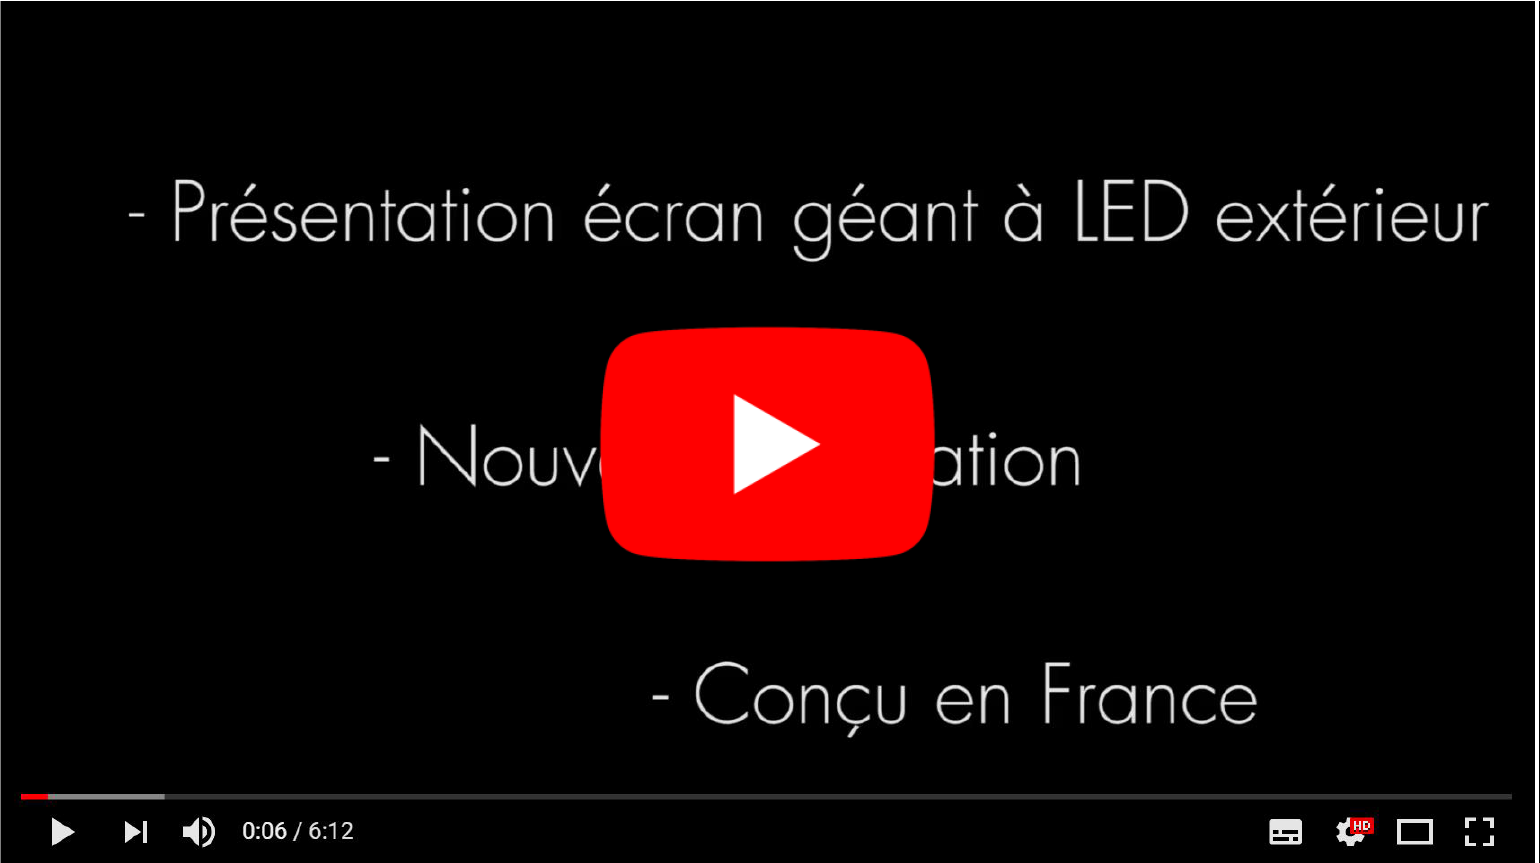 ecran led exterieur pitch 8 mm